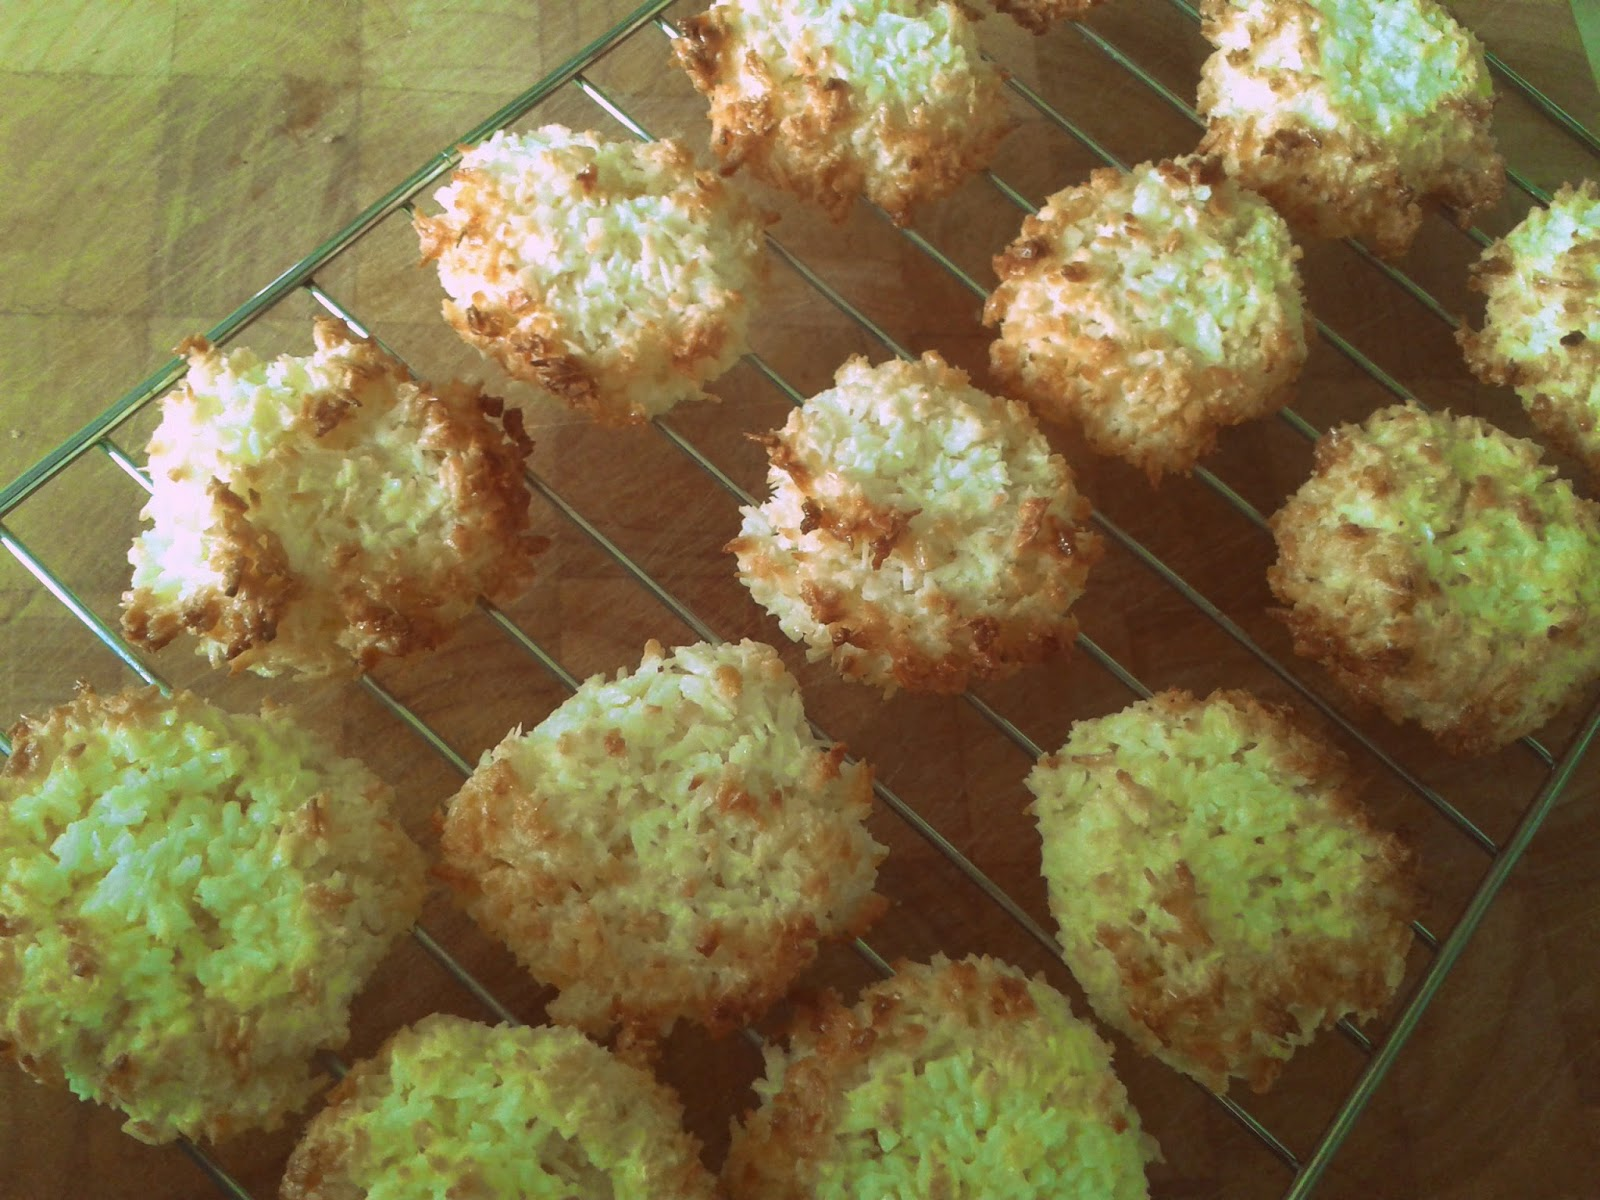 Project 365 day 349 - Coconut macaroons // 76sunflowers